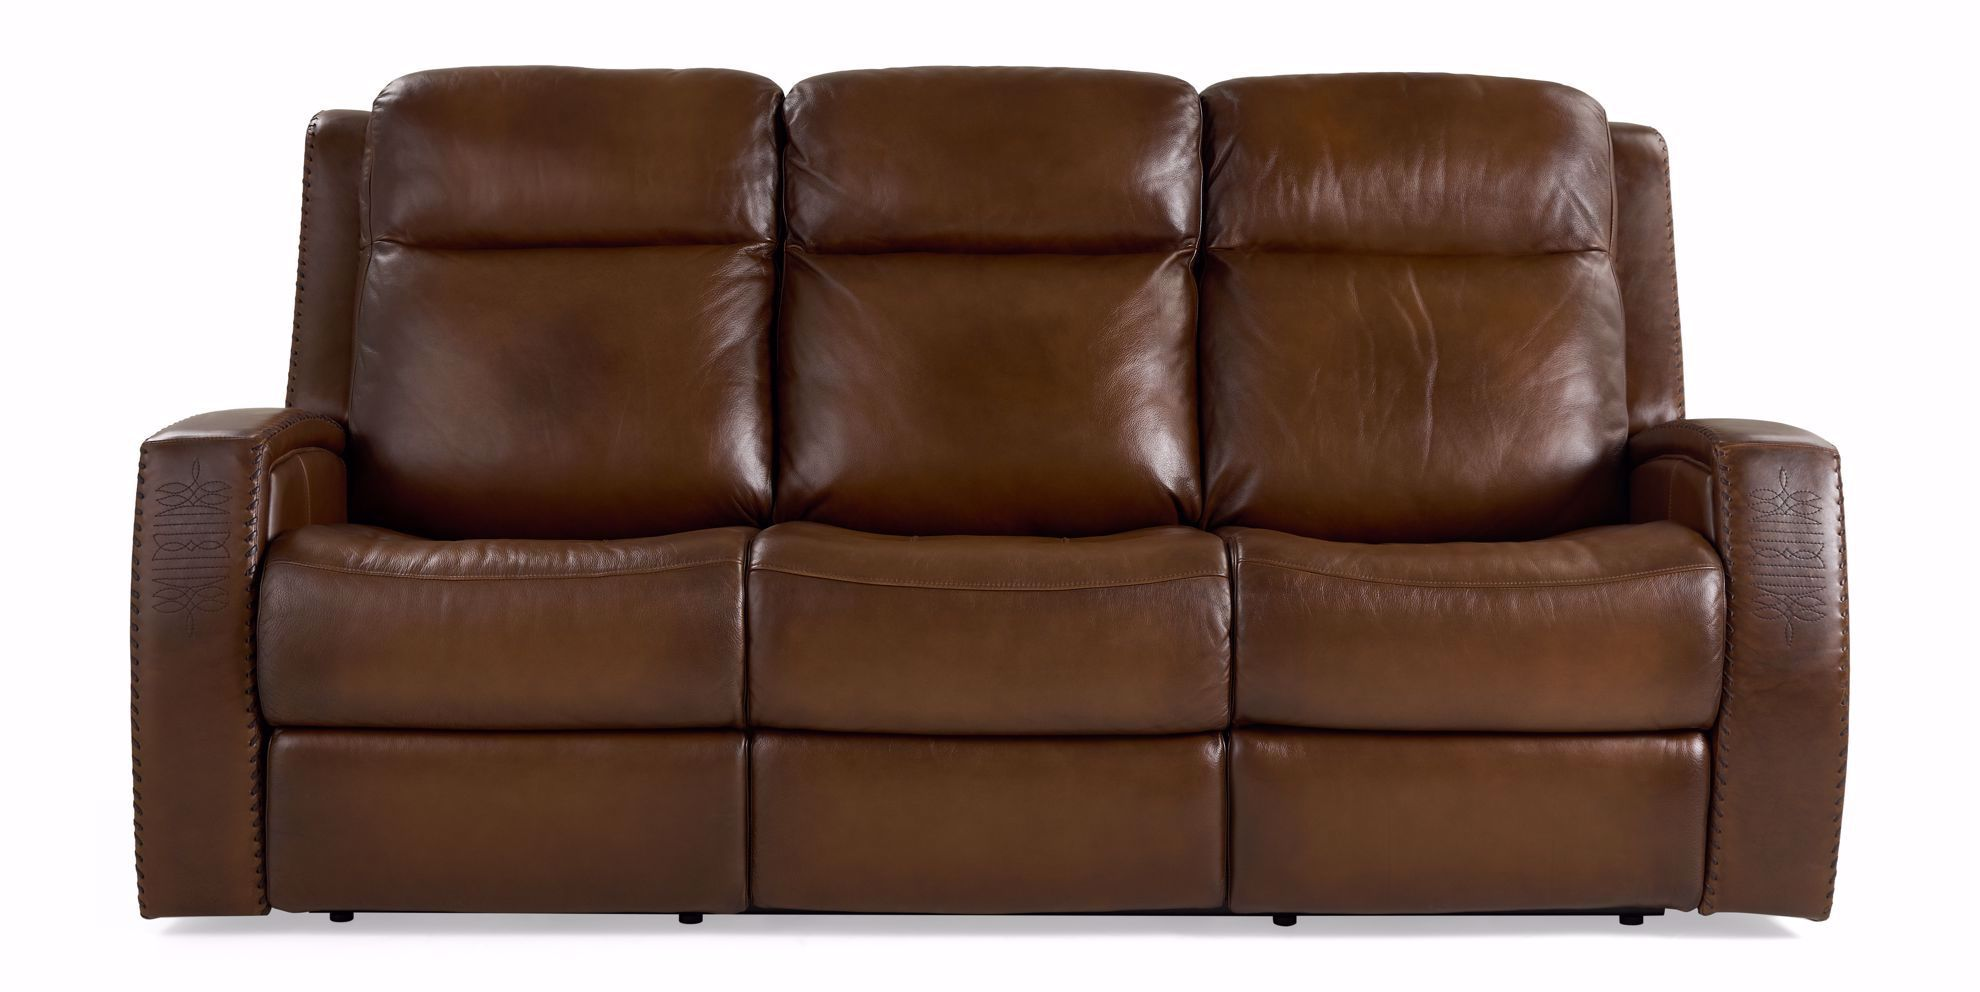 Picture of Mustang Brown Power Reclining Sofa